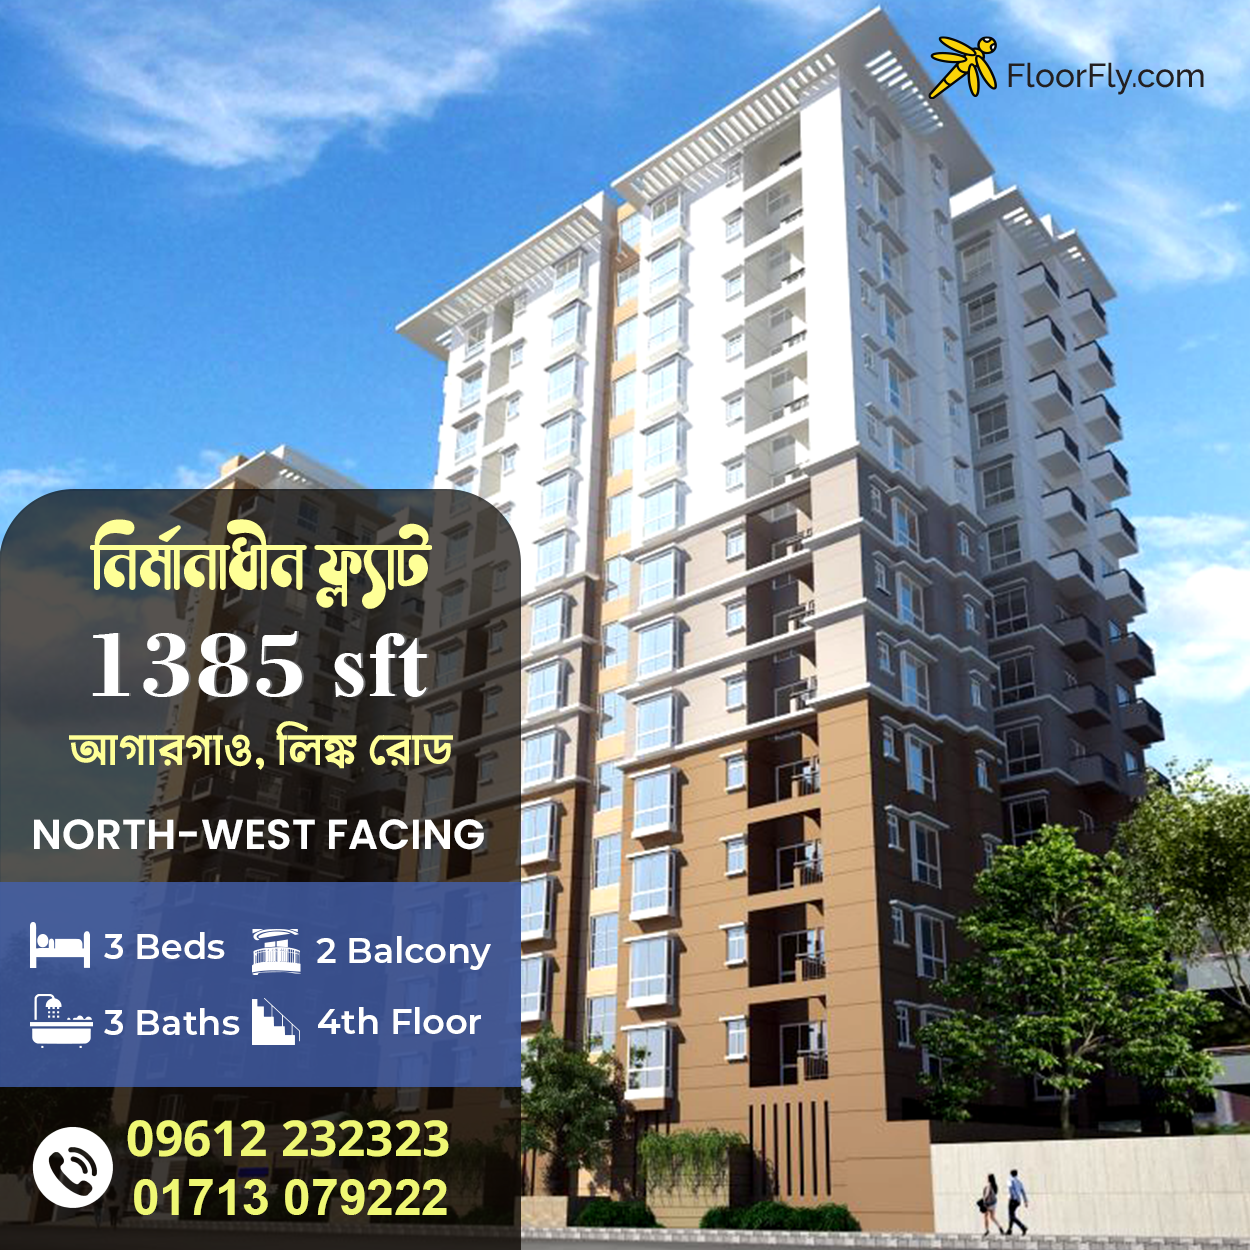 Agargaon Prime Location 3 Bed Flat For Sale | 1385 sft Flat For Sale by floorfly.com